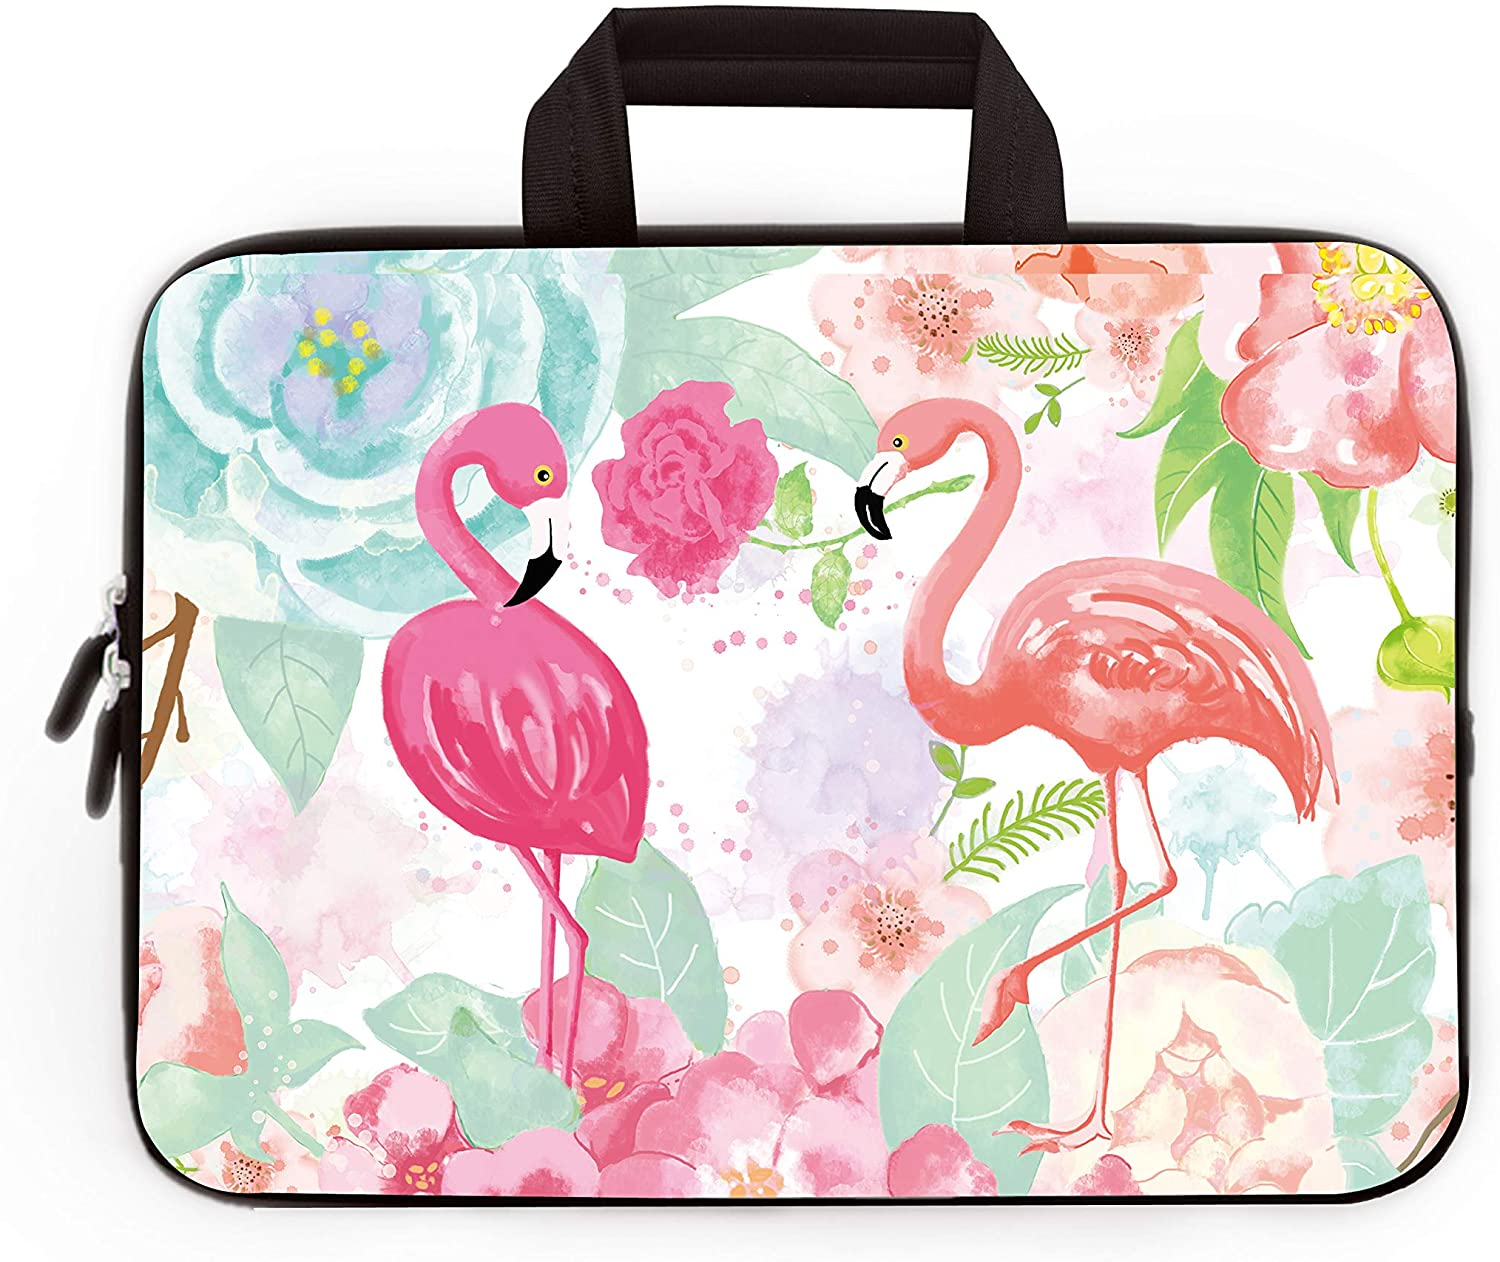 Funny Laptop Sleeve Coconut Palm Flamingo Pattern Tablet Sleeve Scratch Resistant Neoprene Laptop Computer Case Five White 13inch